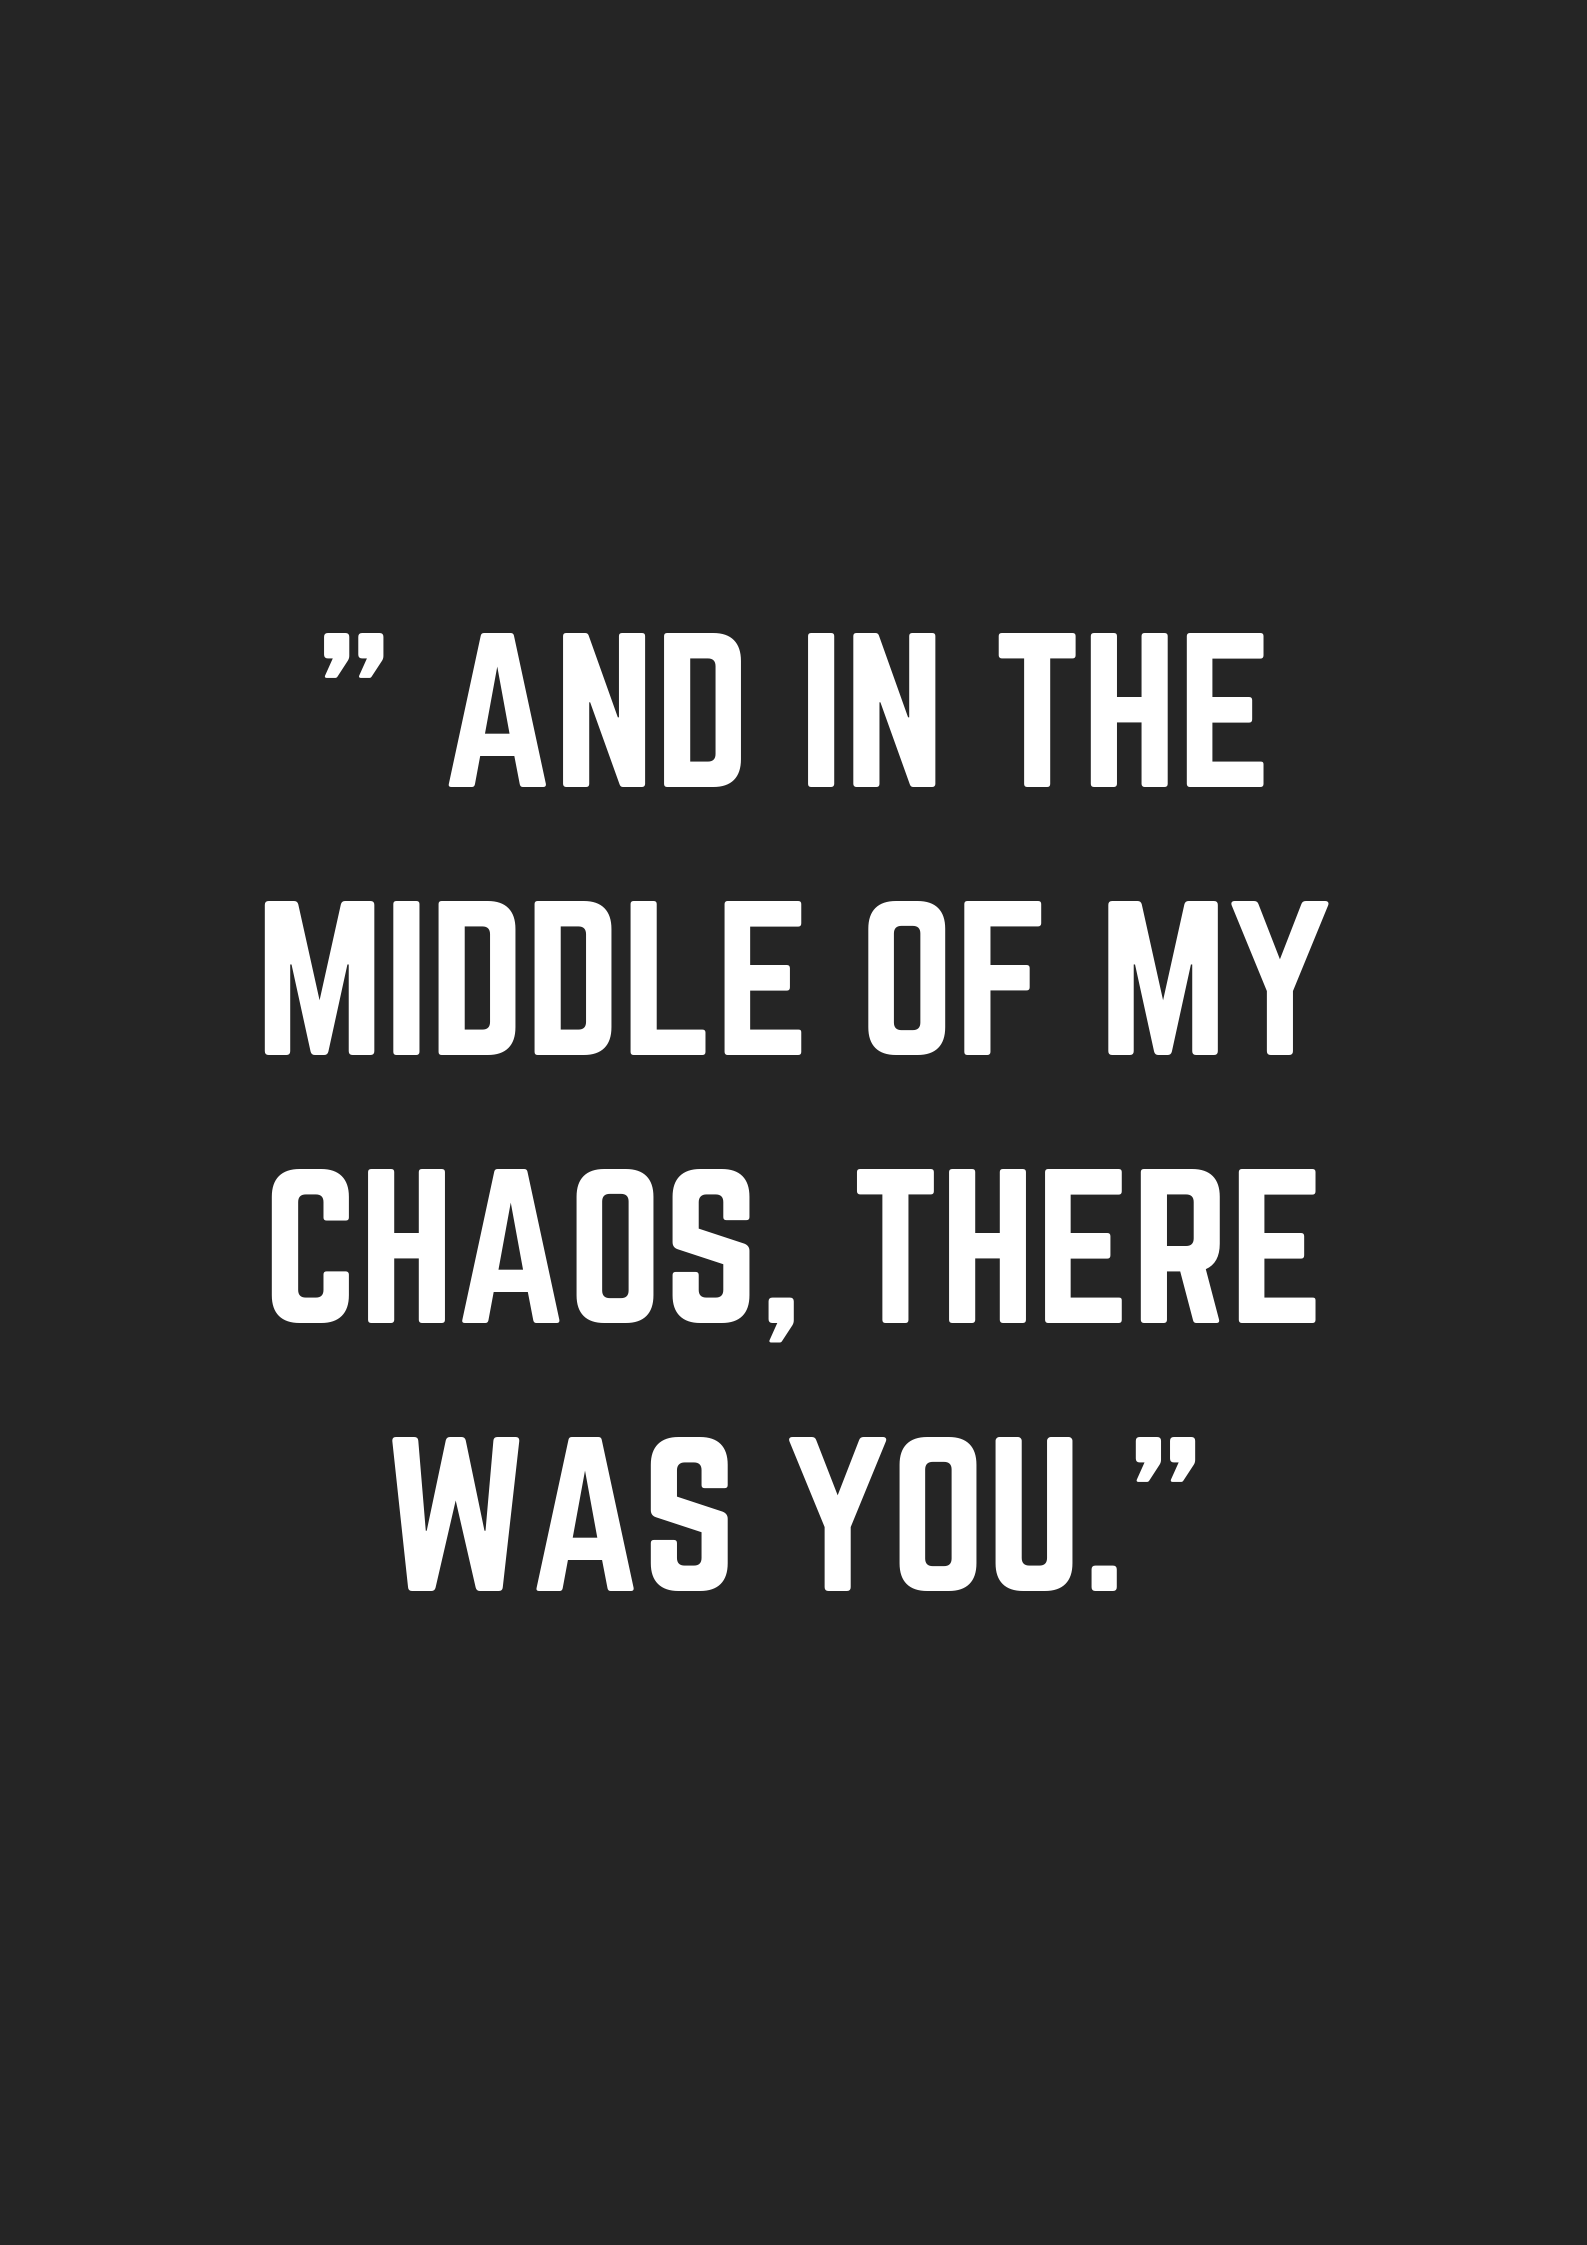 50 Sassy Love and Relationship Quotes for Her #inhaleexhale